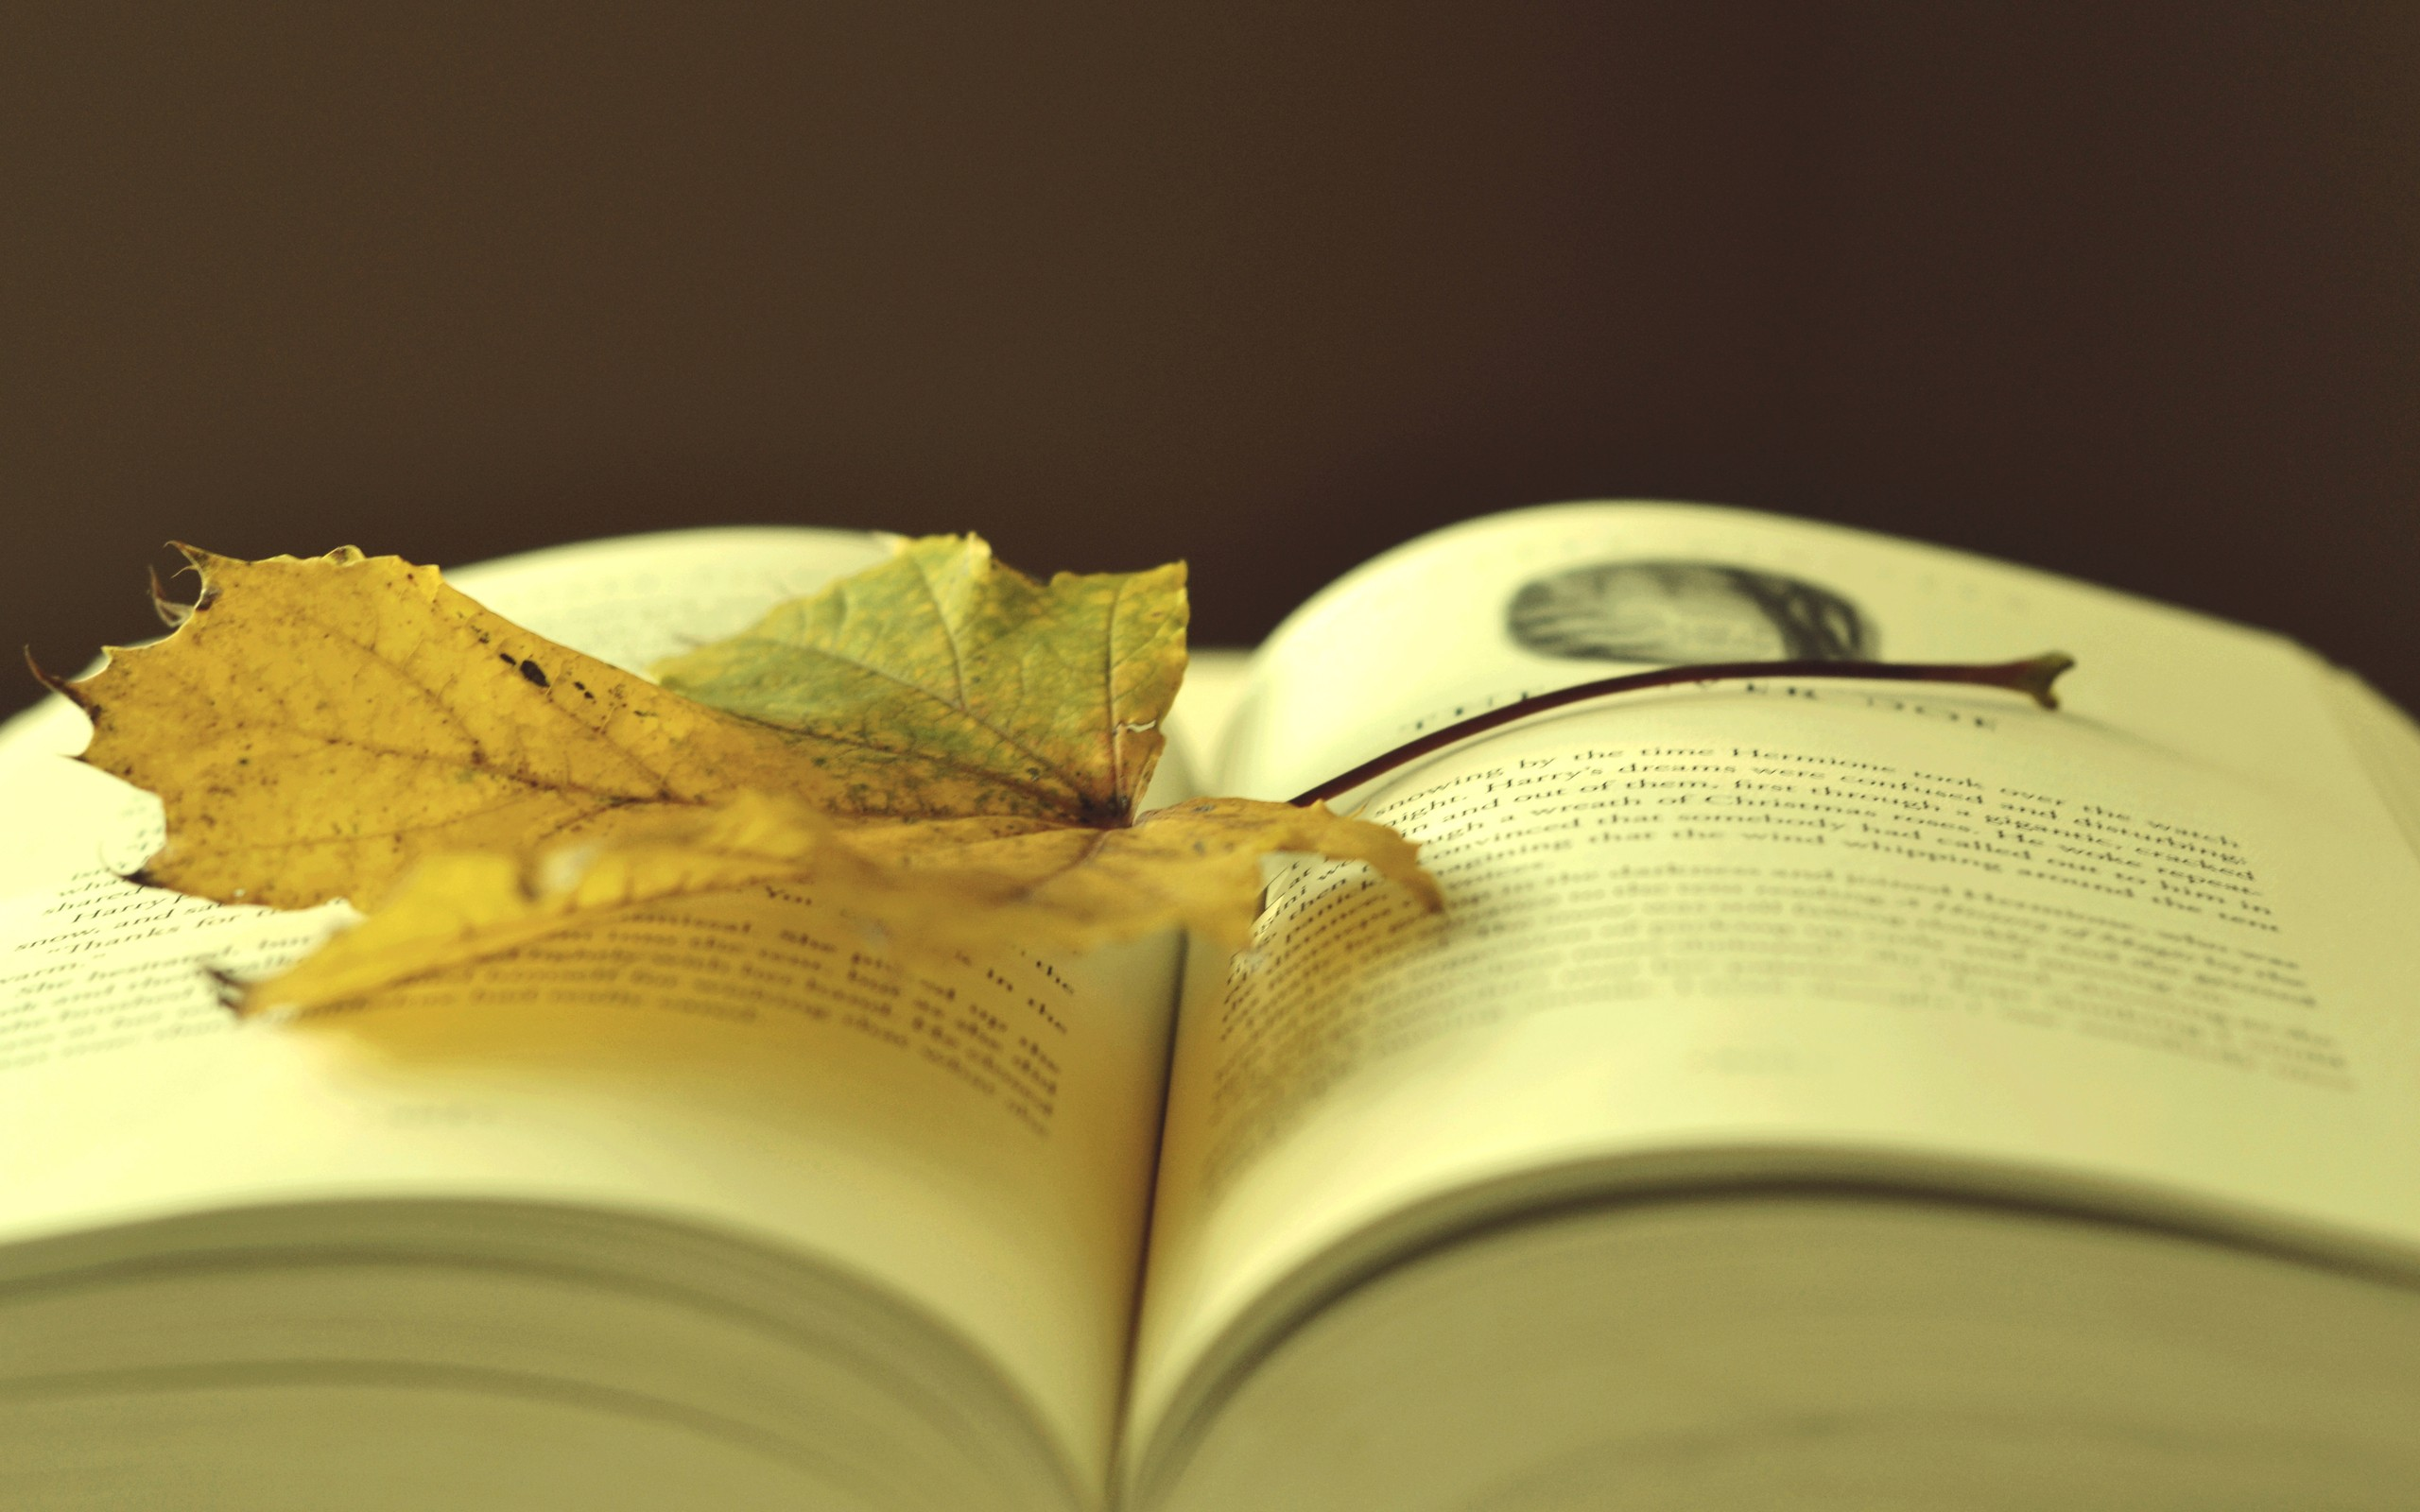 HD Wallpapers Of Books